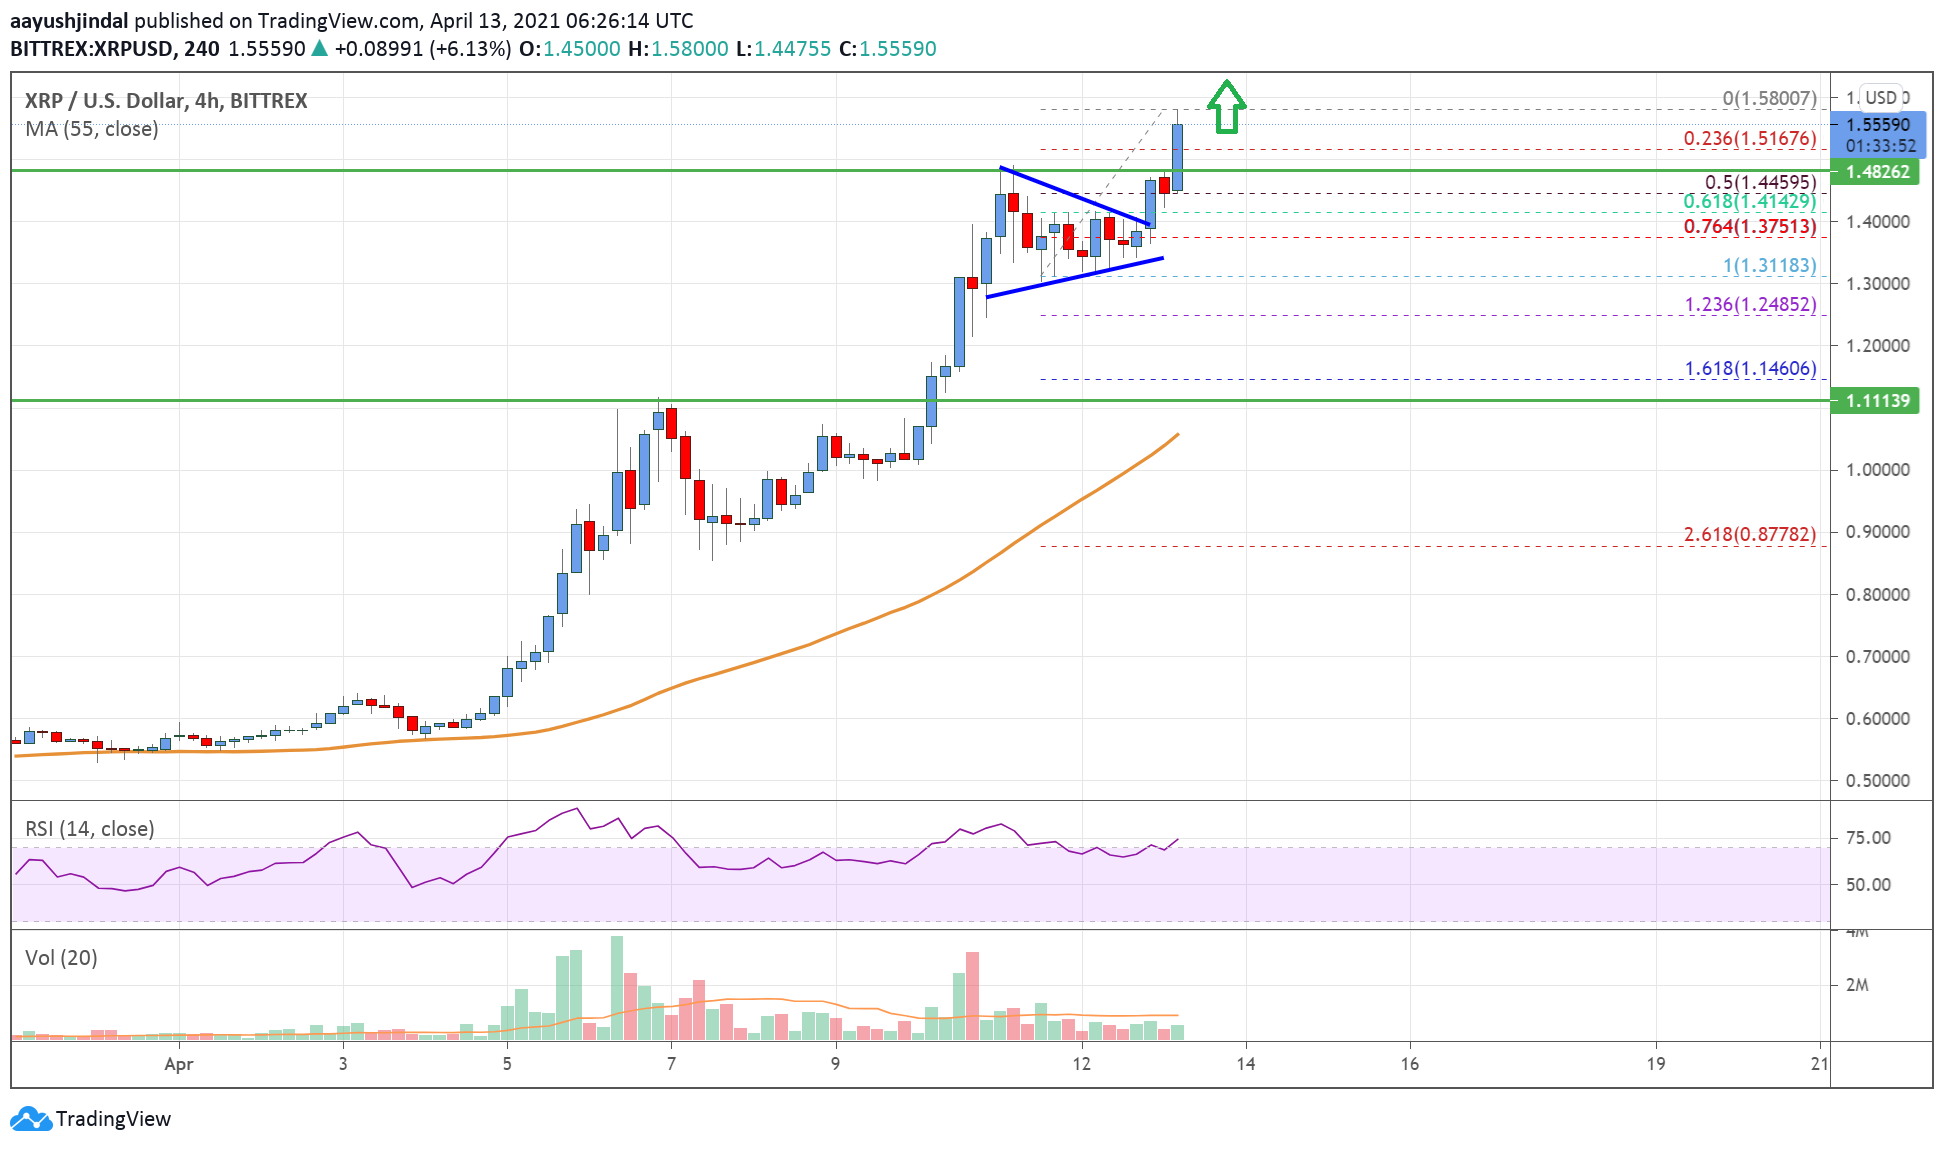 Ripple Price Analysis: Rally Extends To $1.5, More Gains Likely